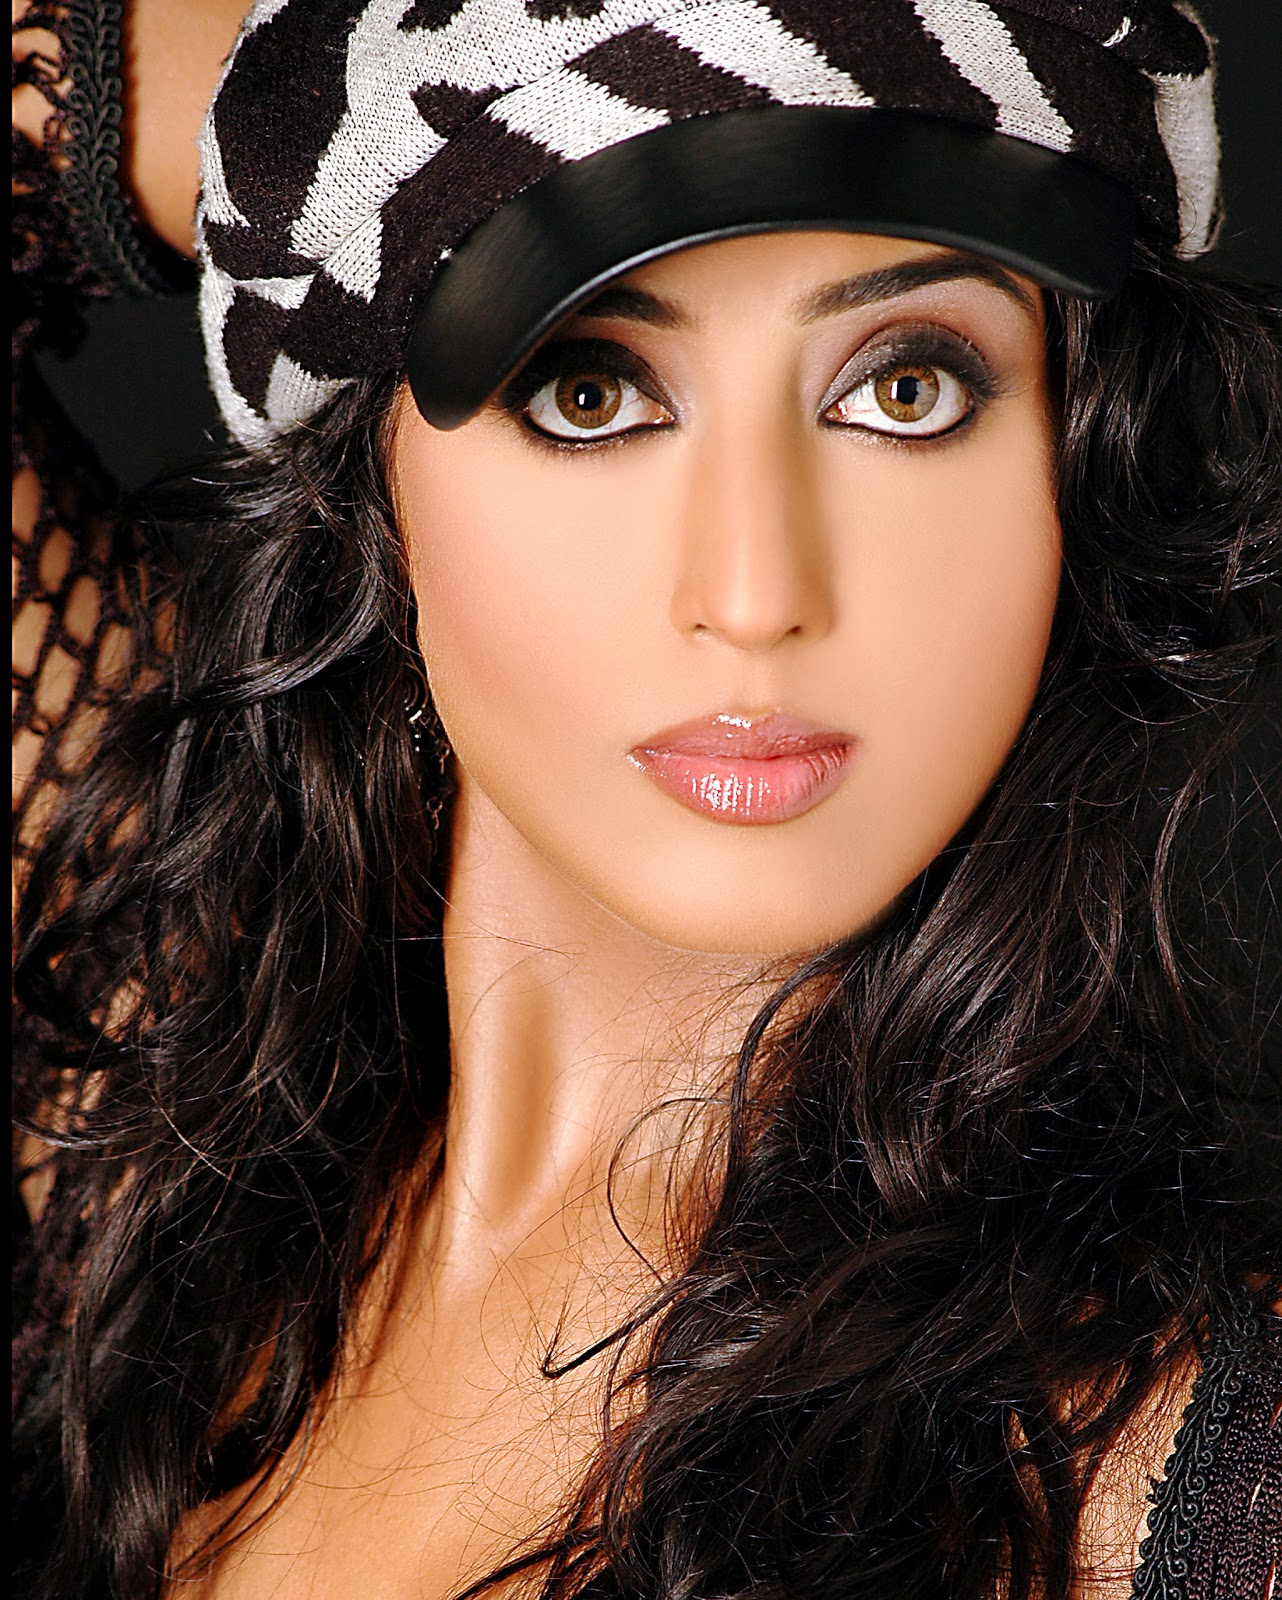 mahie gill - the indian top model | indian models network